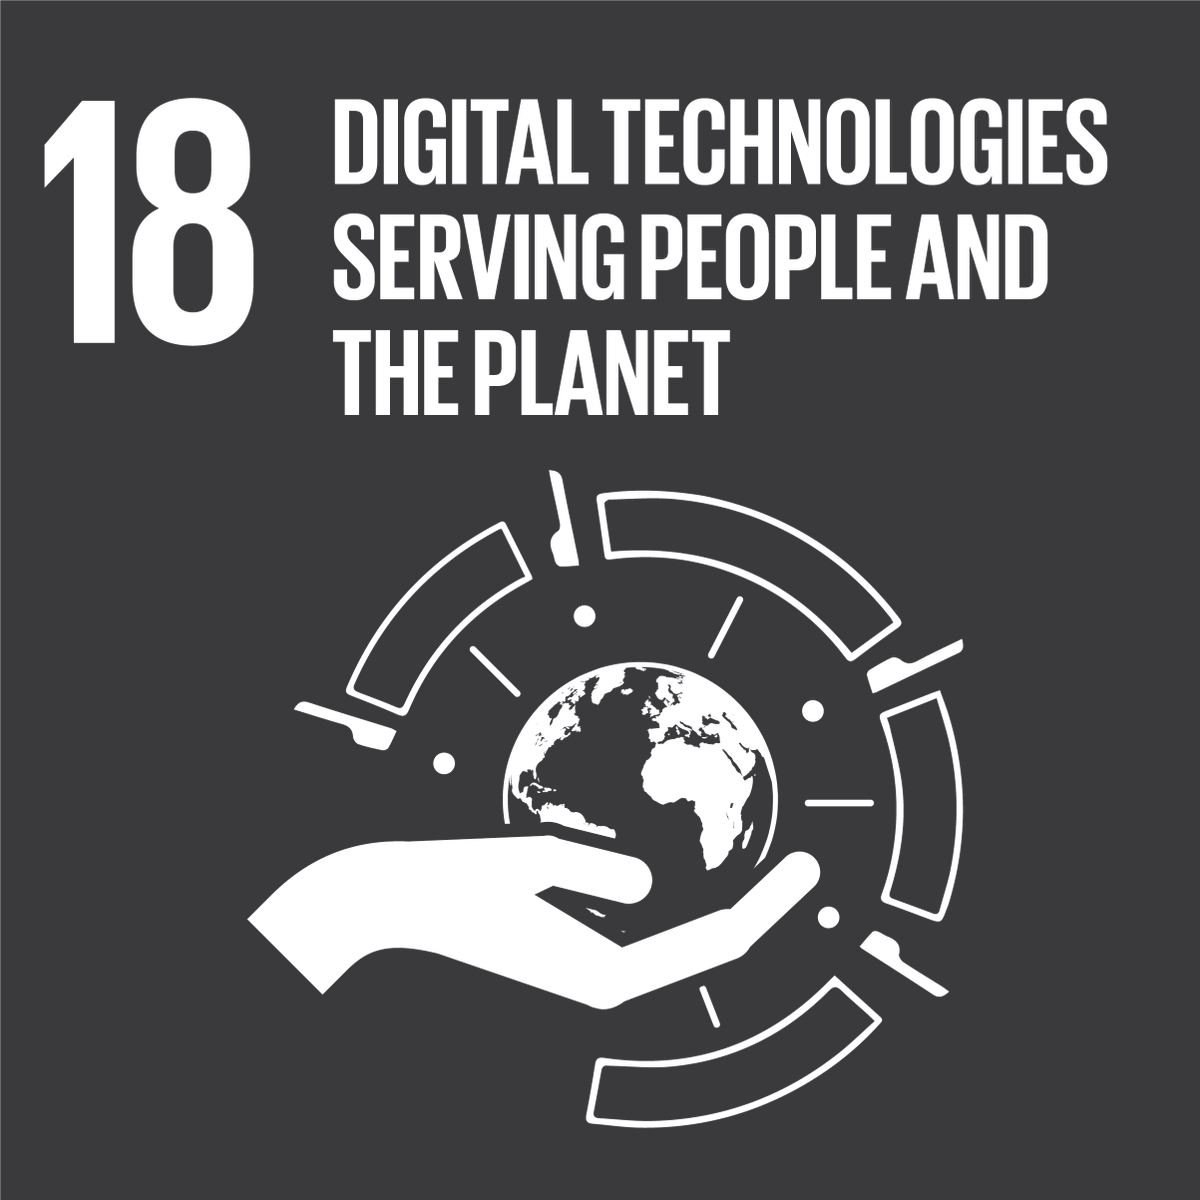 @FutureEarth wants to hear from you.   What should an #SDG on the digital age include? Take the 3-minute survey to describe your vision for #SDG18 - Ensuring the Digital Age Supports People and Planet: https://bit.ly/2ZmzVRG pic.twitter.com/W6cee4s9pD